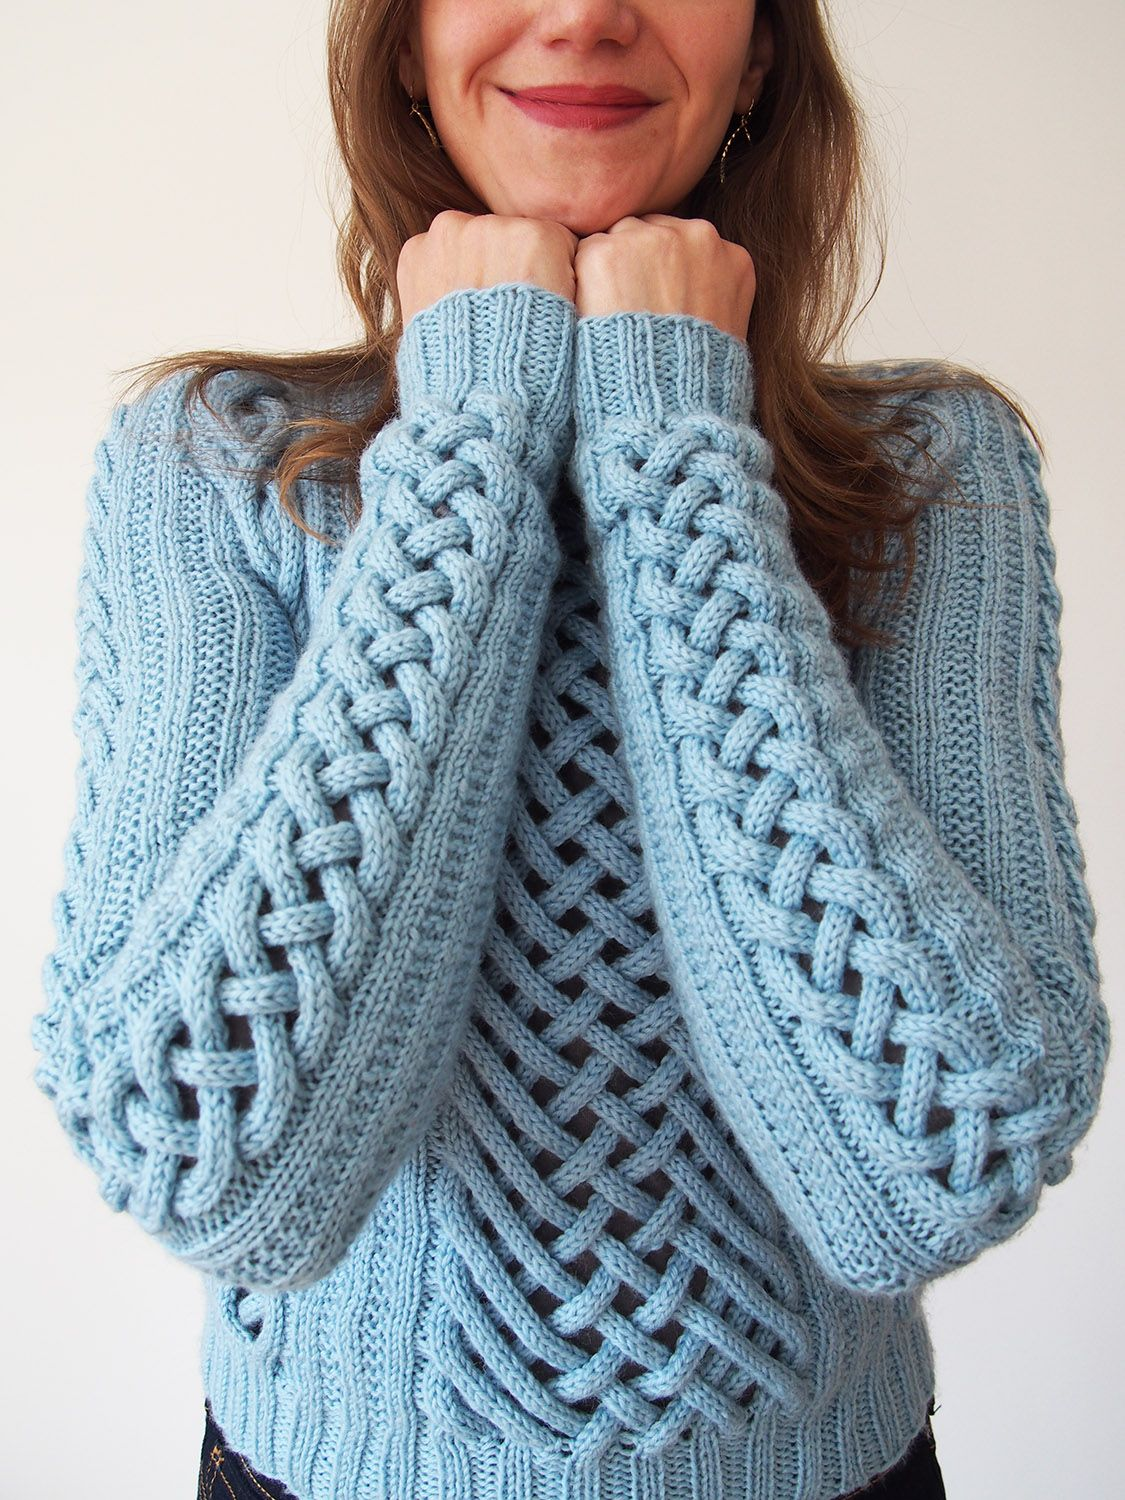 Fretwork Pullover by Shiri Mor (Vogue Knitting Magazine), knit by ...